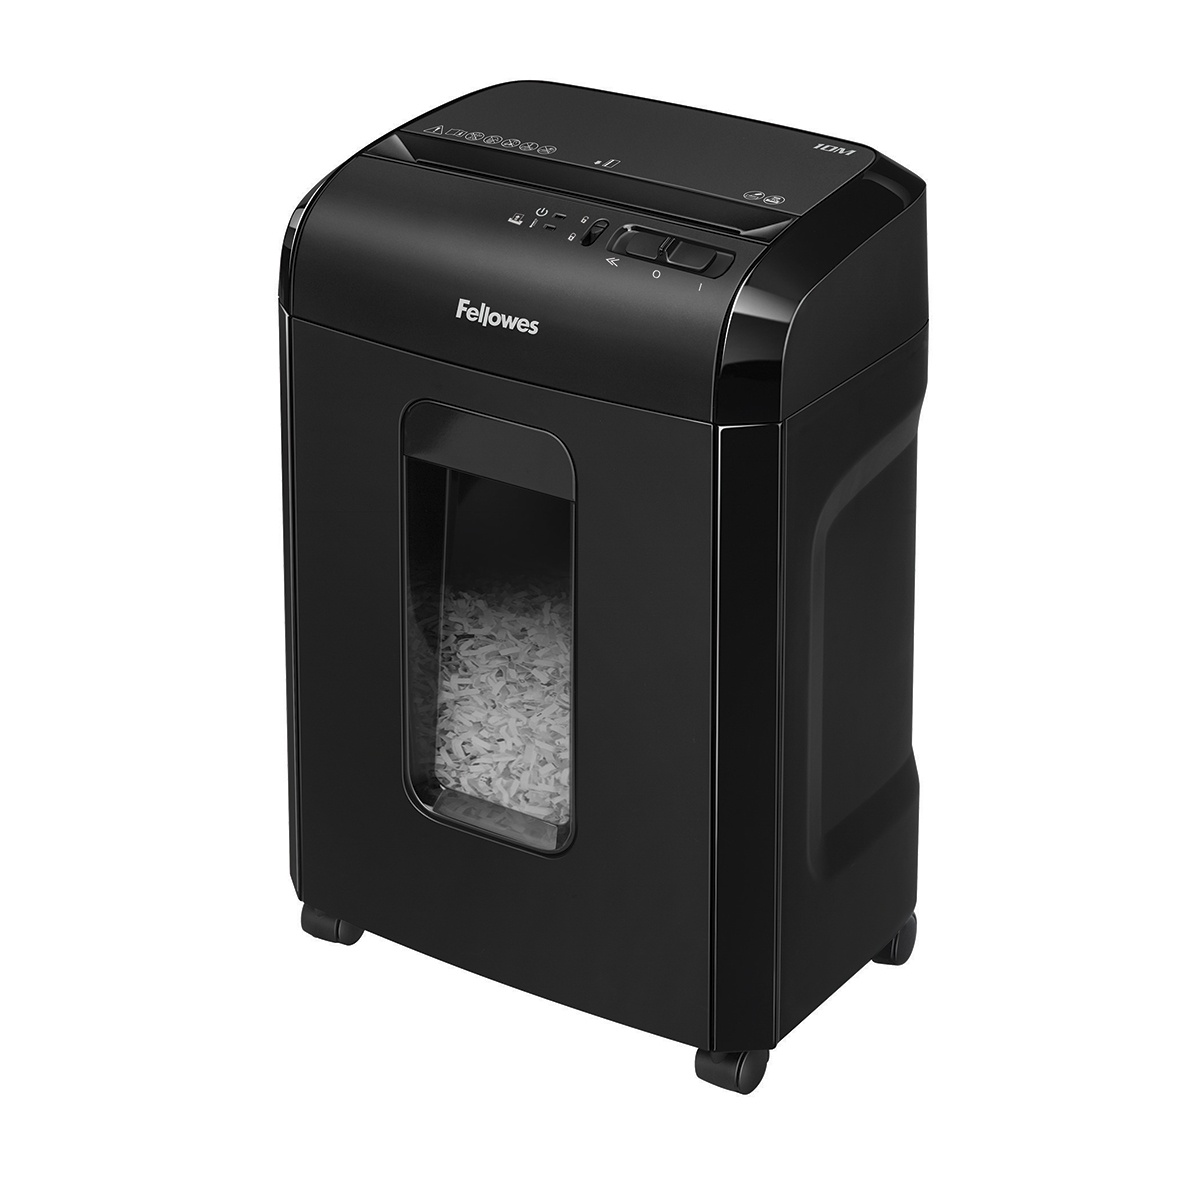 Fellowes 10M Microcut Shredder